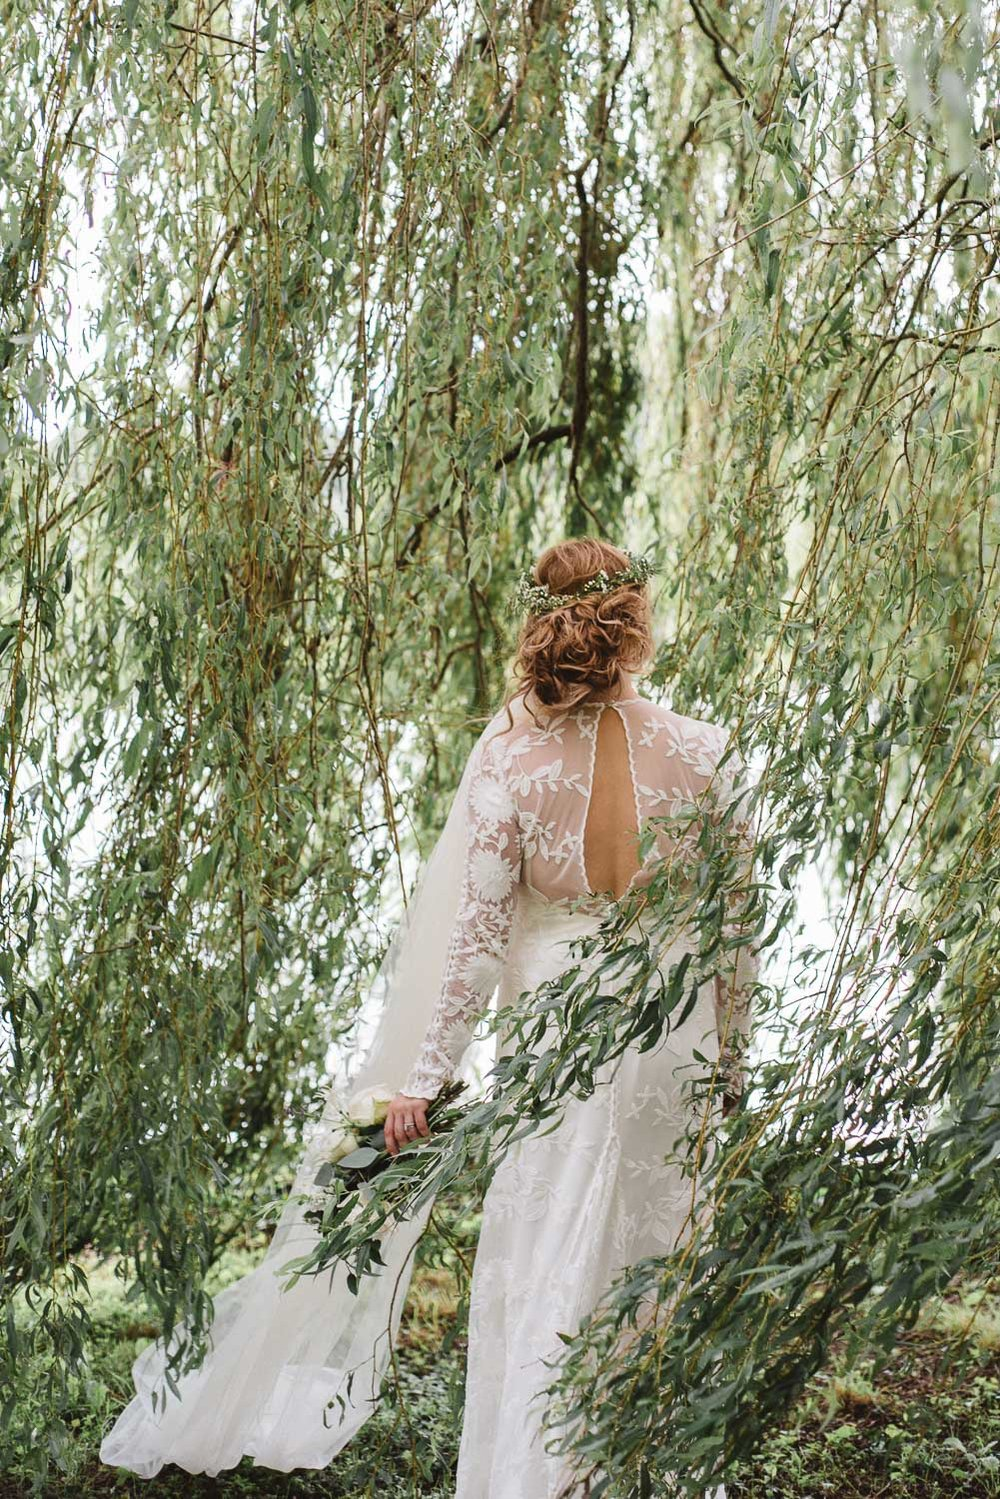 Back of the brides dress under a willow tree at Castle Leslie Wedding.